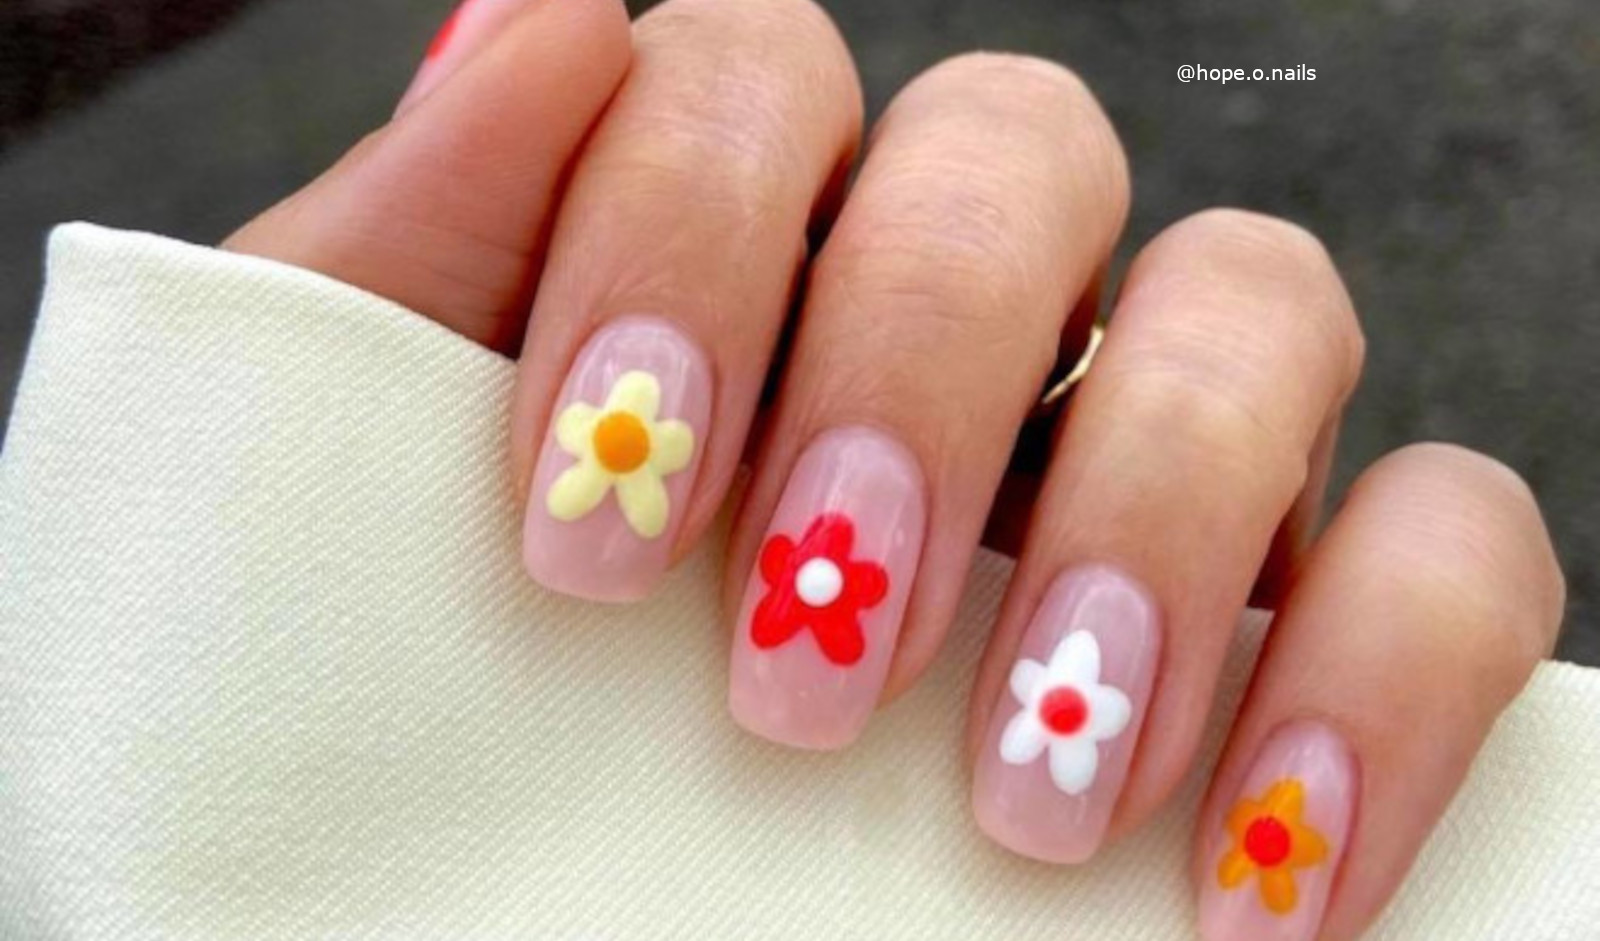 Fresh Summer Nail Designs to Get You Looking on Point for the Summer Season